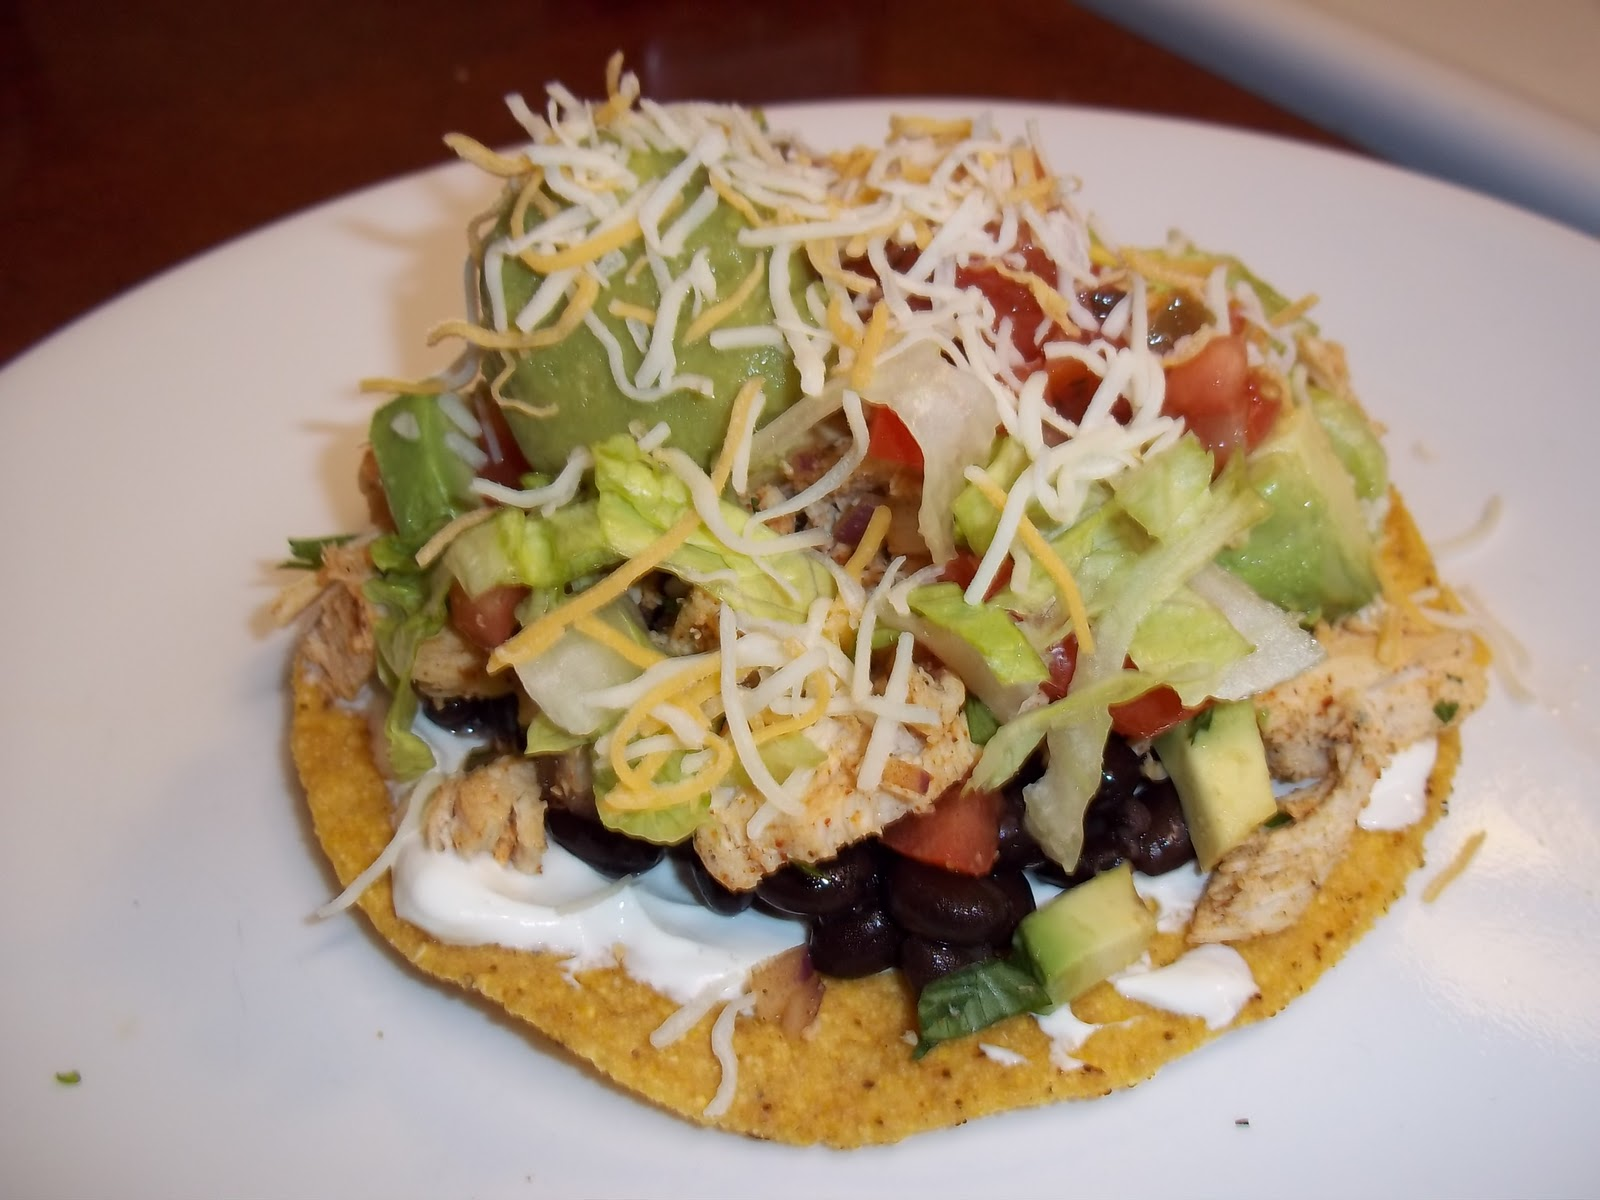 The Daily Smash: Chicken and Black Bean Tostadas